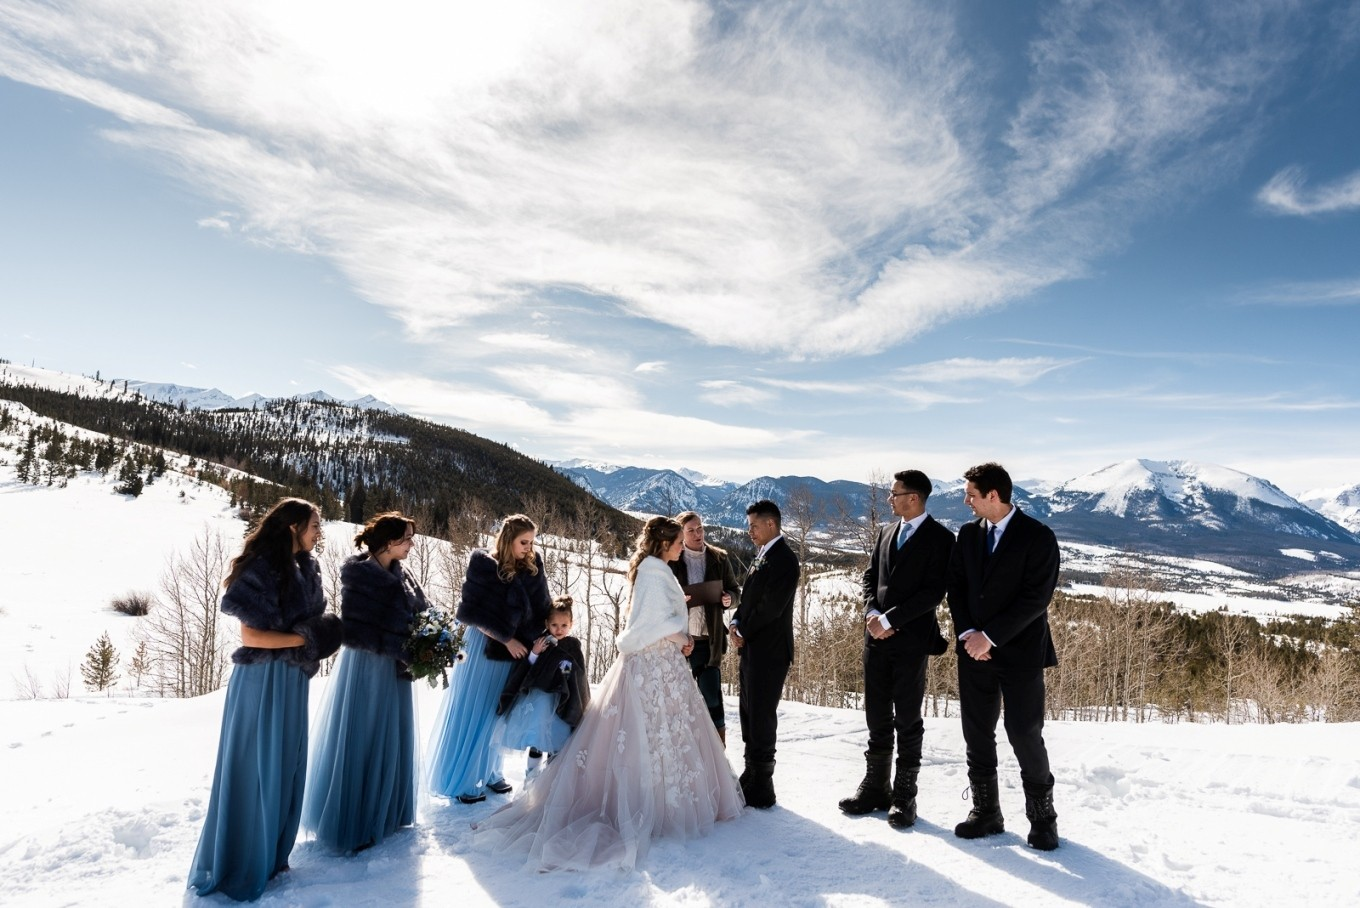 getting married in the Colorado Rocky mountains in winter